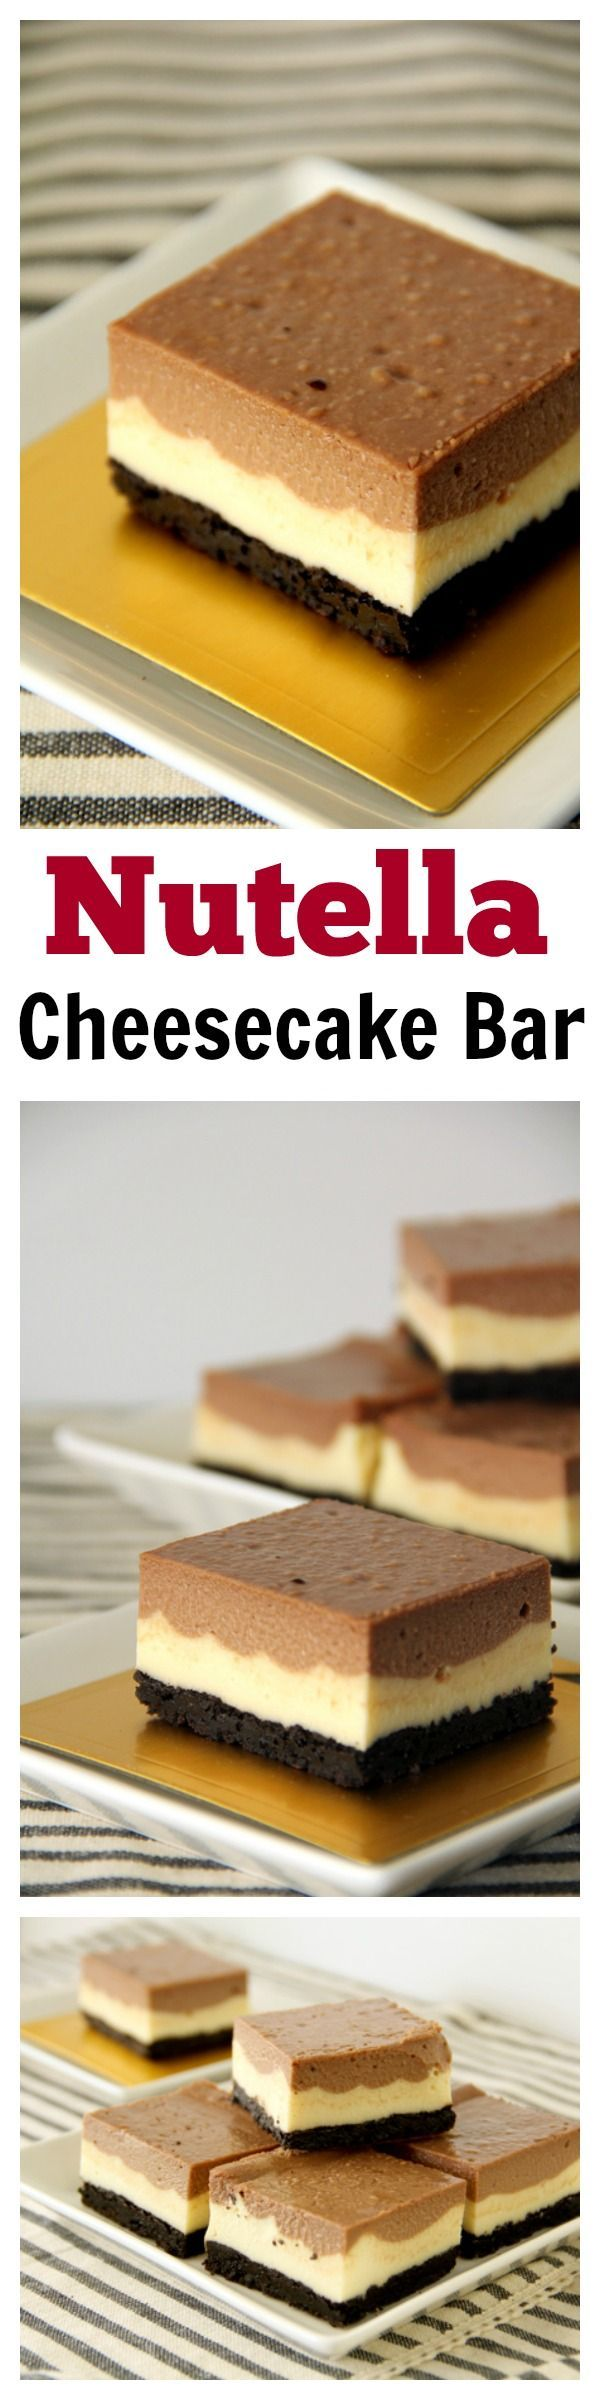 Nutella Cheesecake Bar with Oreo Base. To-die-for and the most AMAZING cheesecake bar ever | rasamalaysia.com | #cheesecake